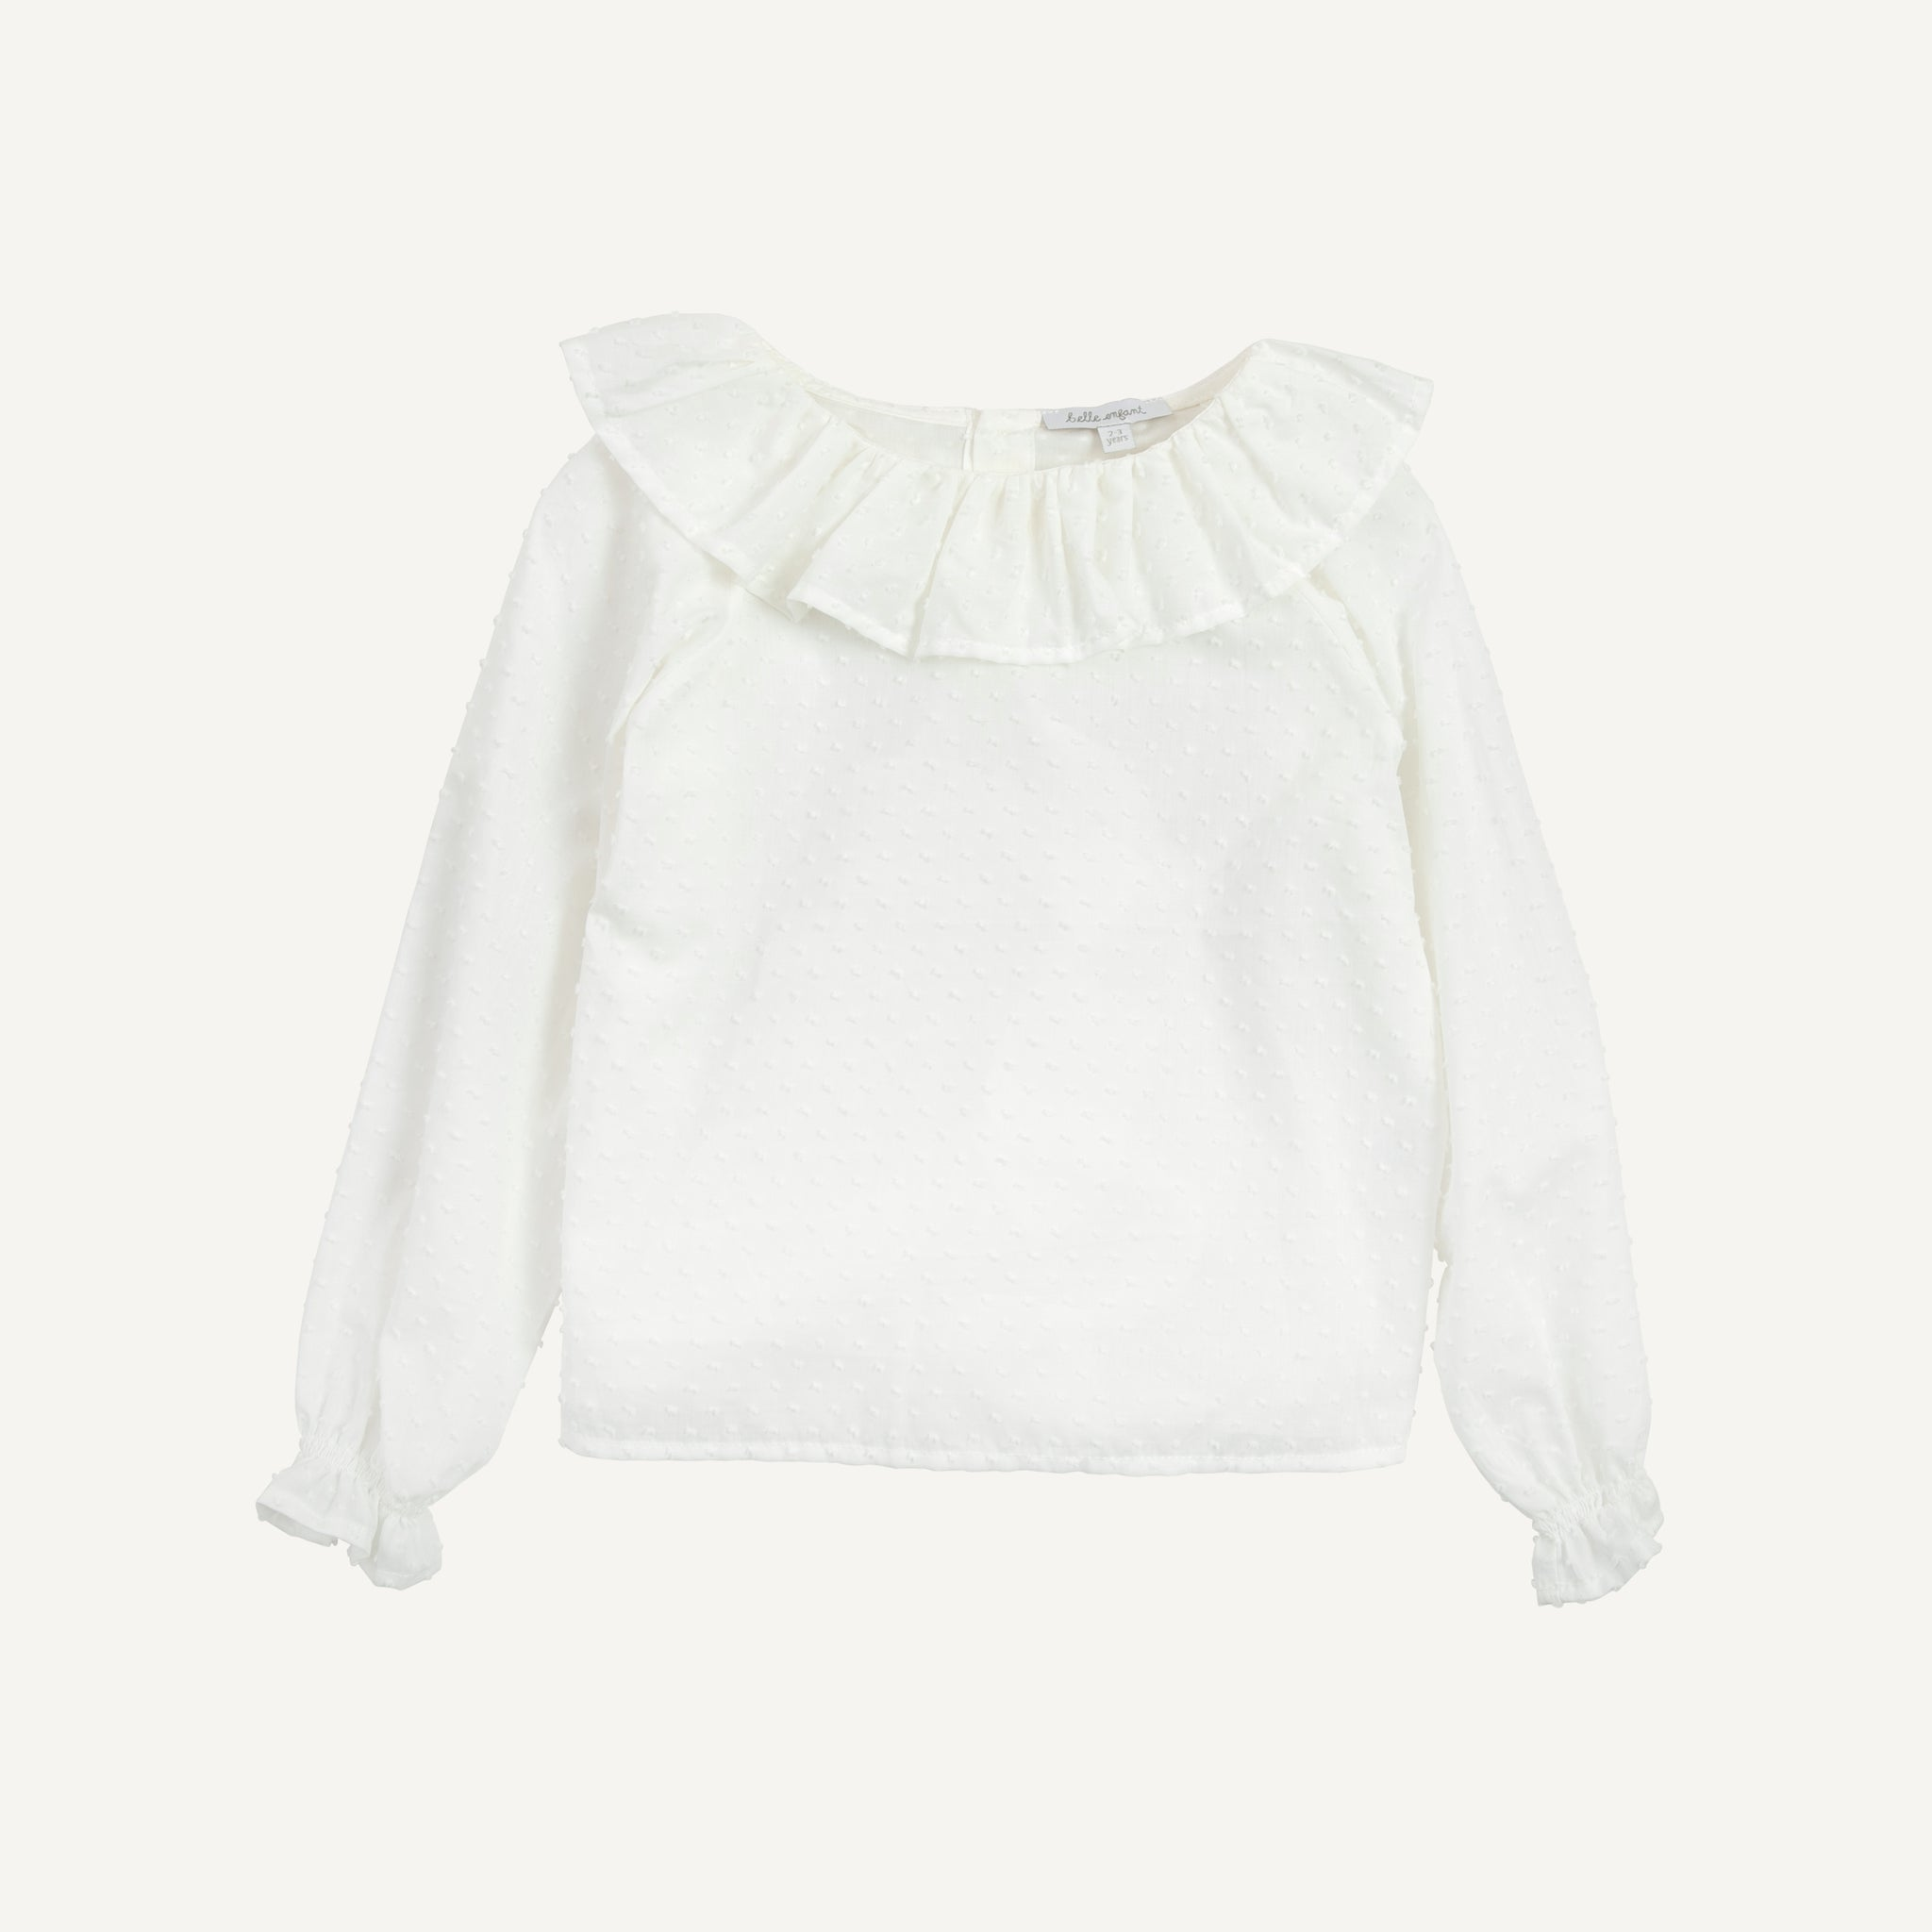 BELLE ENFANT RUFFLED COLLAR BLOUSE